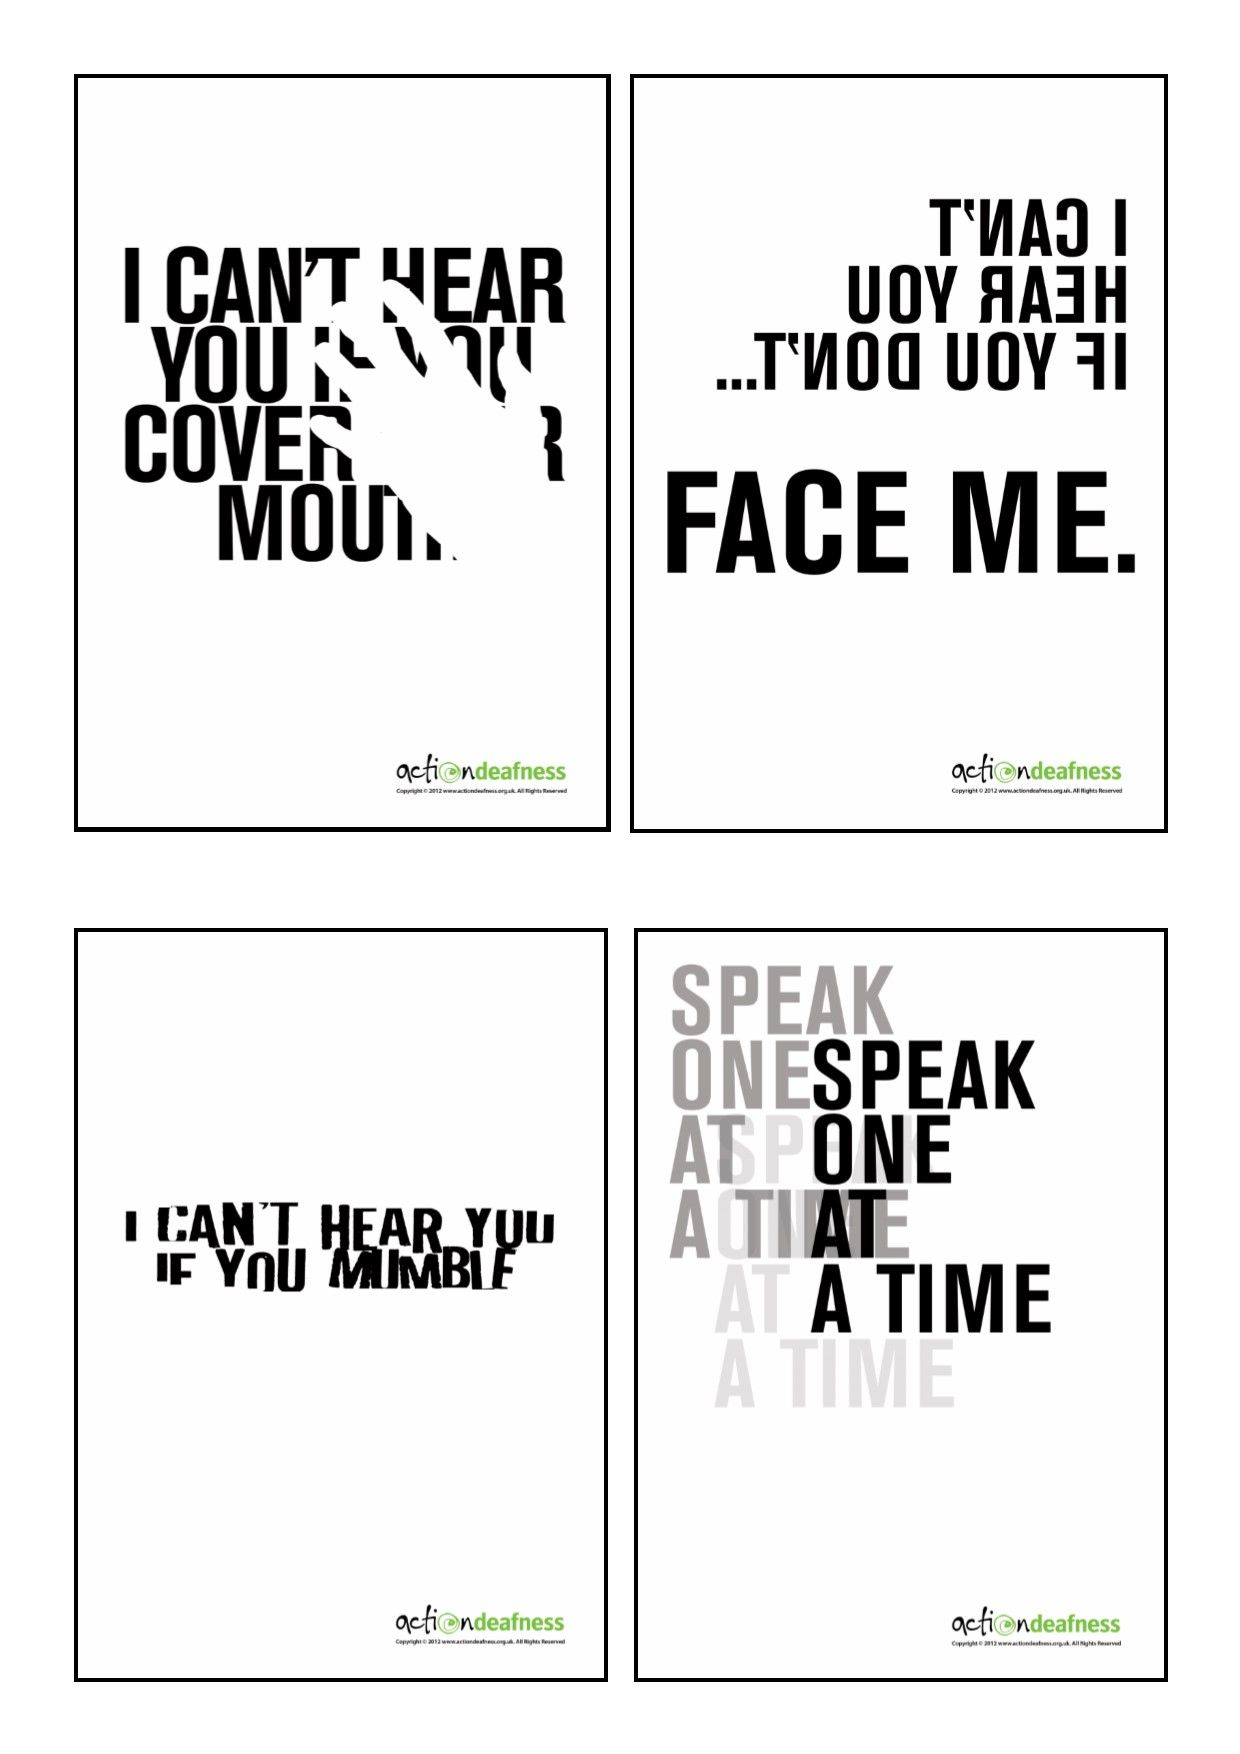 A set of 4 different A3 size high resolution posters which raise awareness of deafness